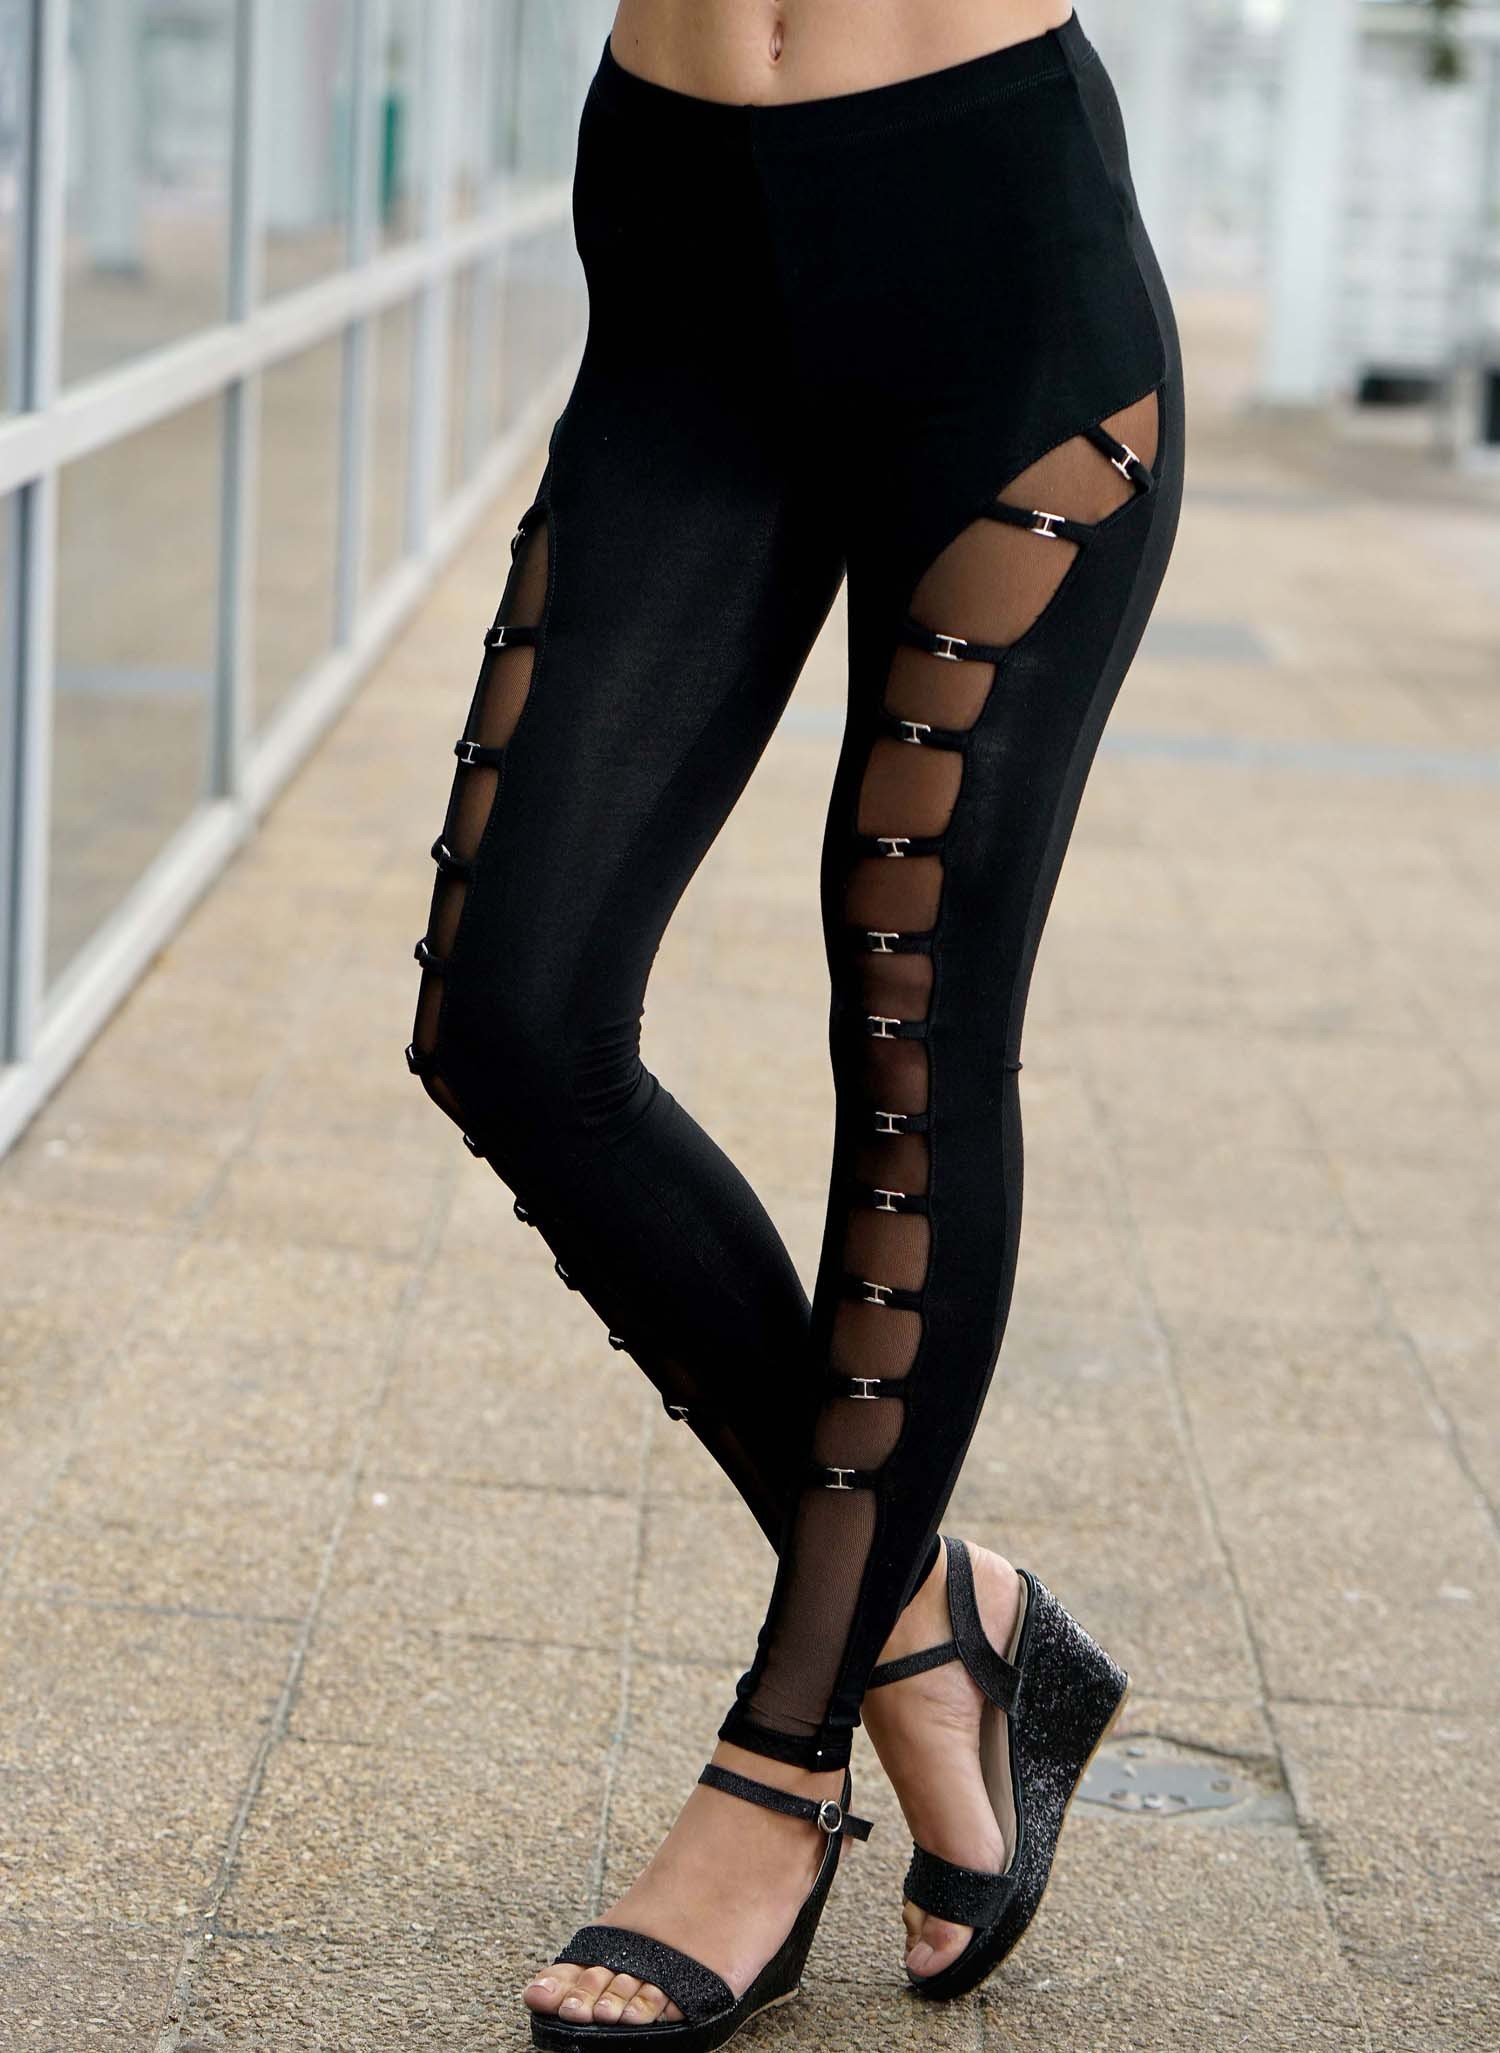 D-Cocktail-Leggings,Tüll schw. L 010 - 1 - Ronja.ch